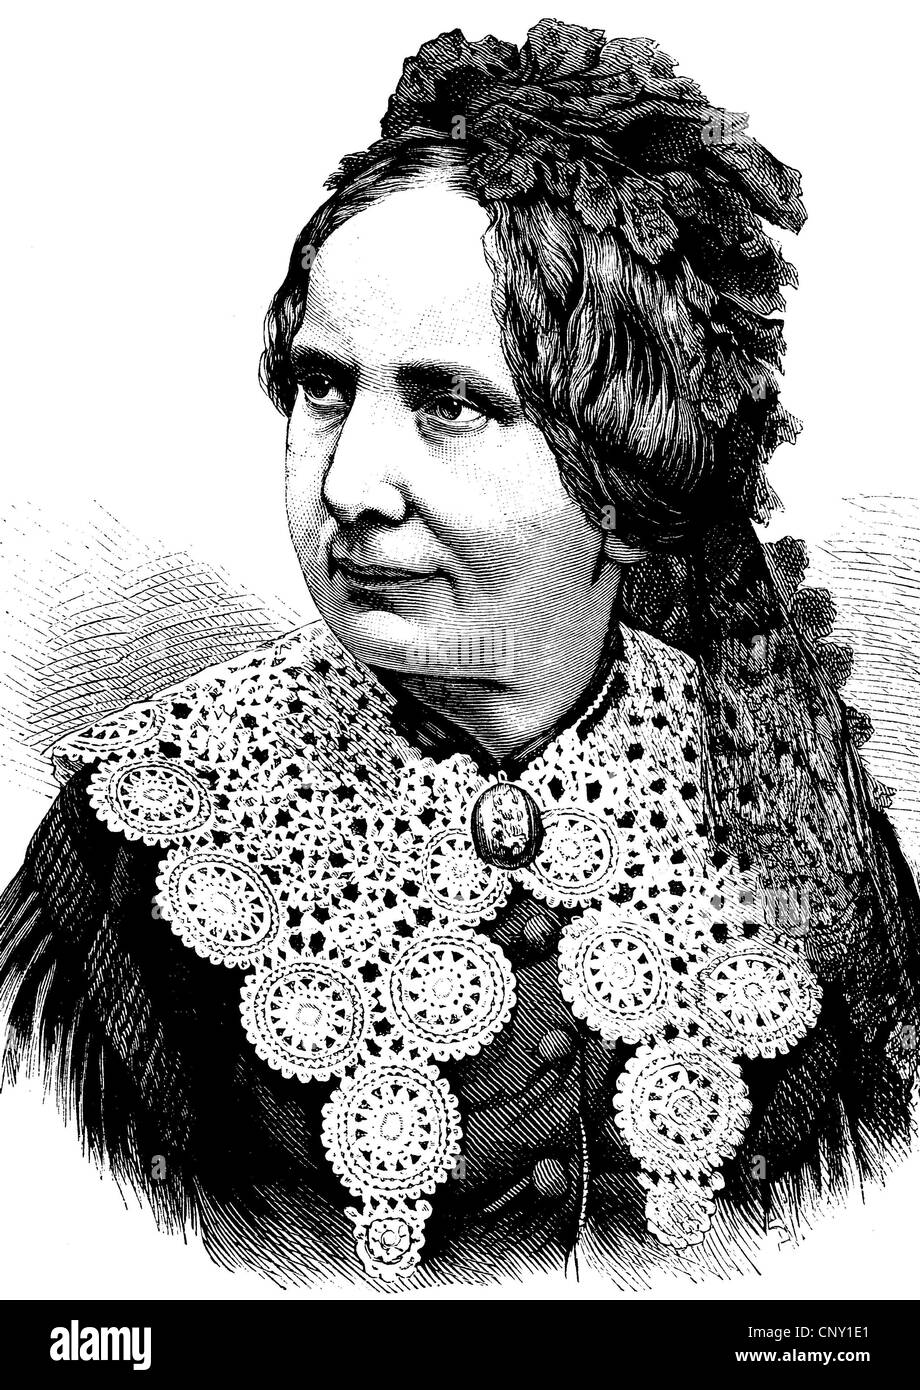 Betty Paoli, 1814 - 1894, an Austrian poet, novelist, journalist and translator, historical engraving, about 1889 - Stock Image